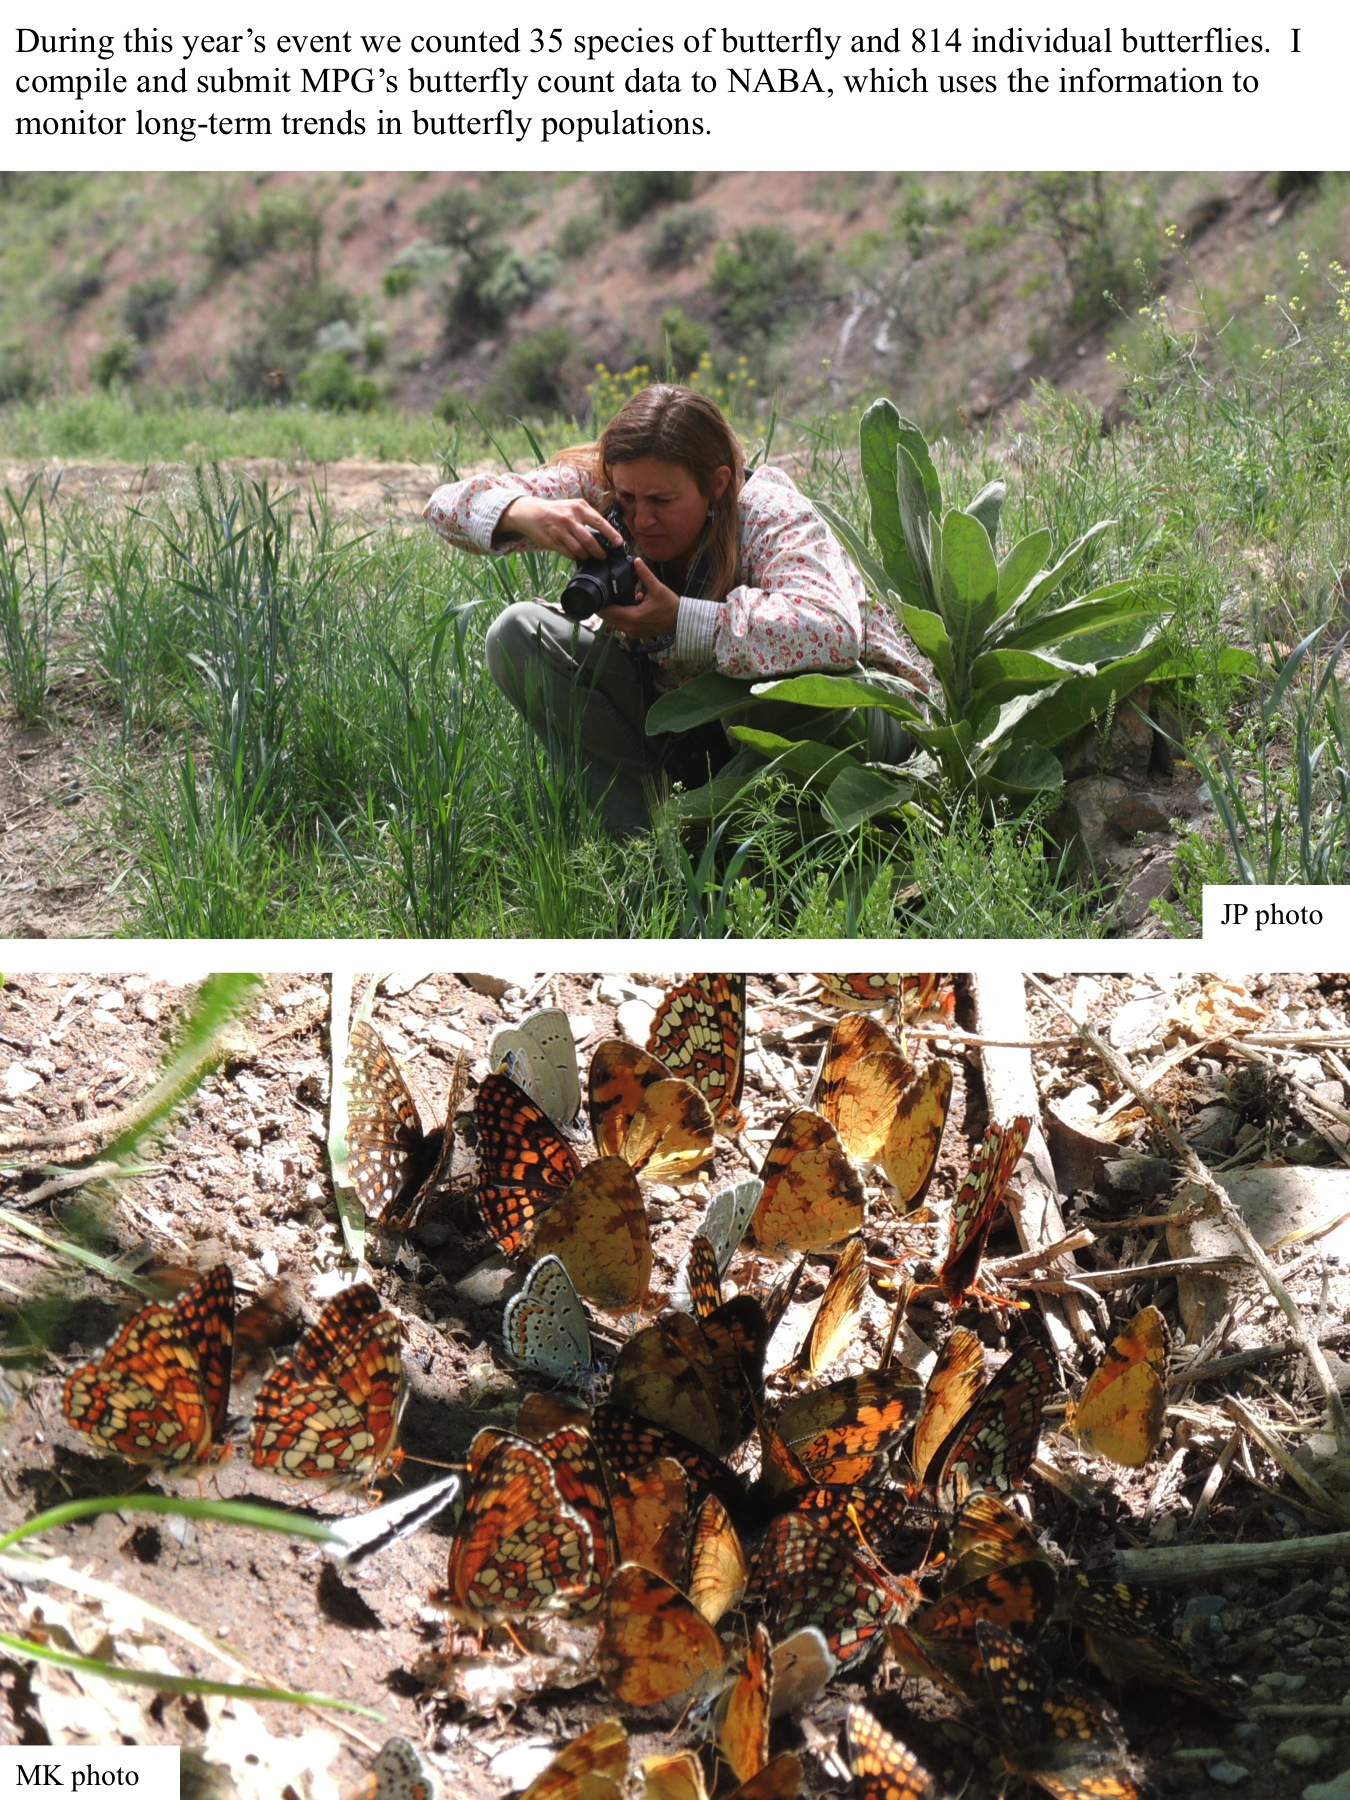 During this year's event we counted 35 species of butterfly and 814 individual butterflies. I compile and submit MPG's butterfly count data to NABA, which uses the information to monitor long-term trends in butterfly populations. JP